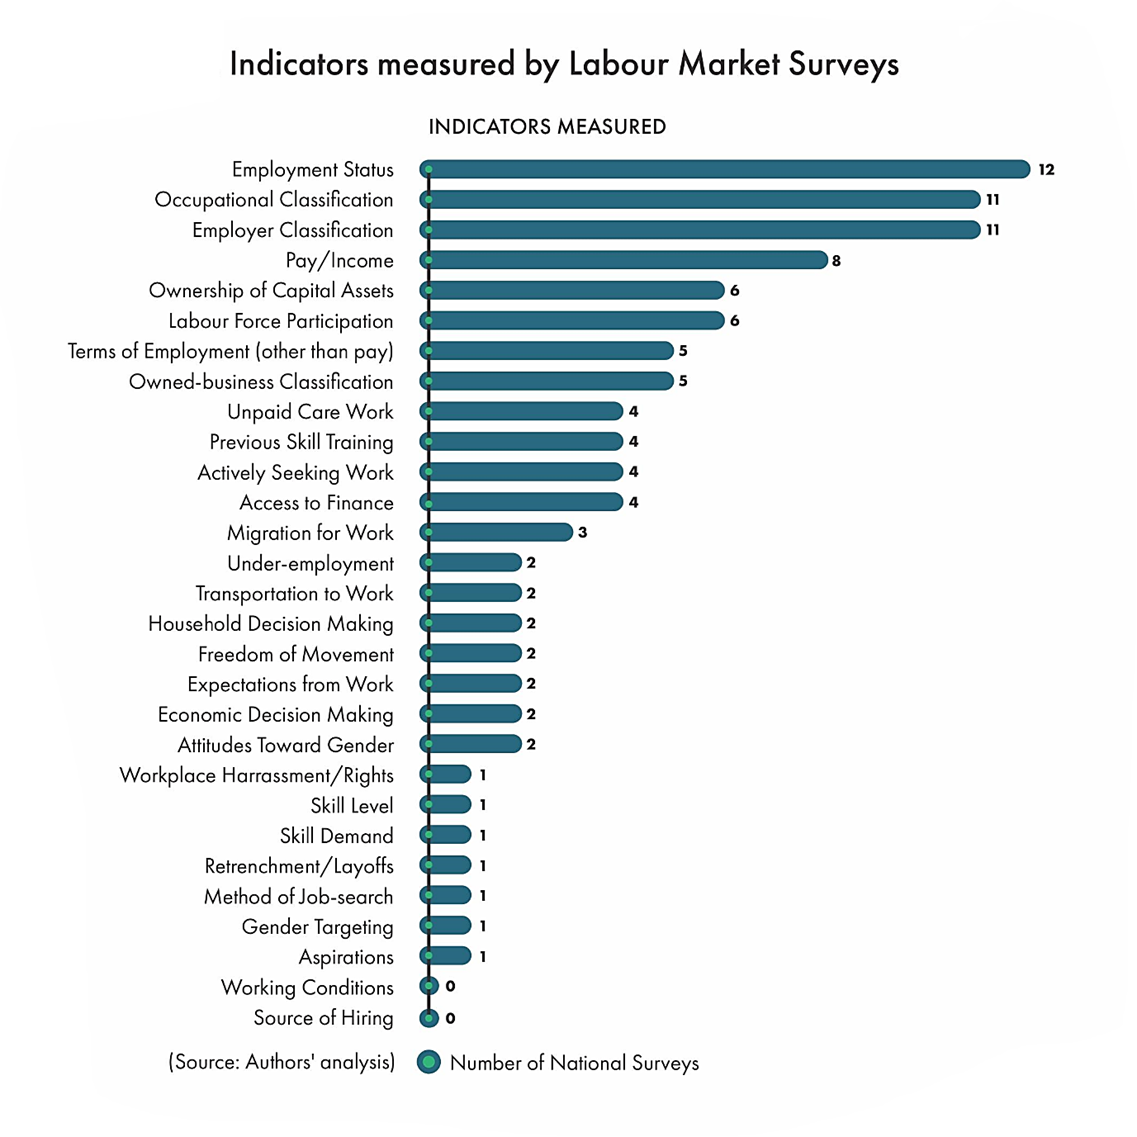 Indicators measured by Labour Market Surveys